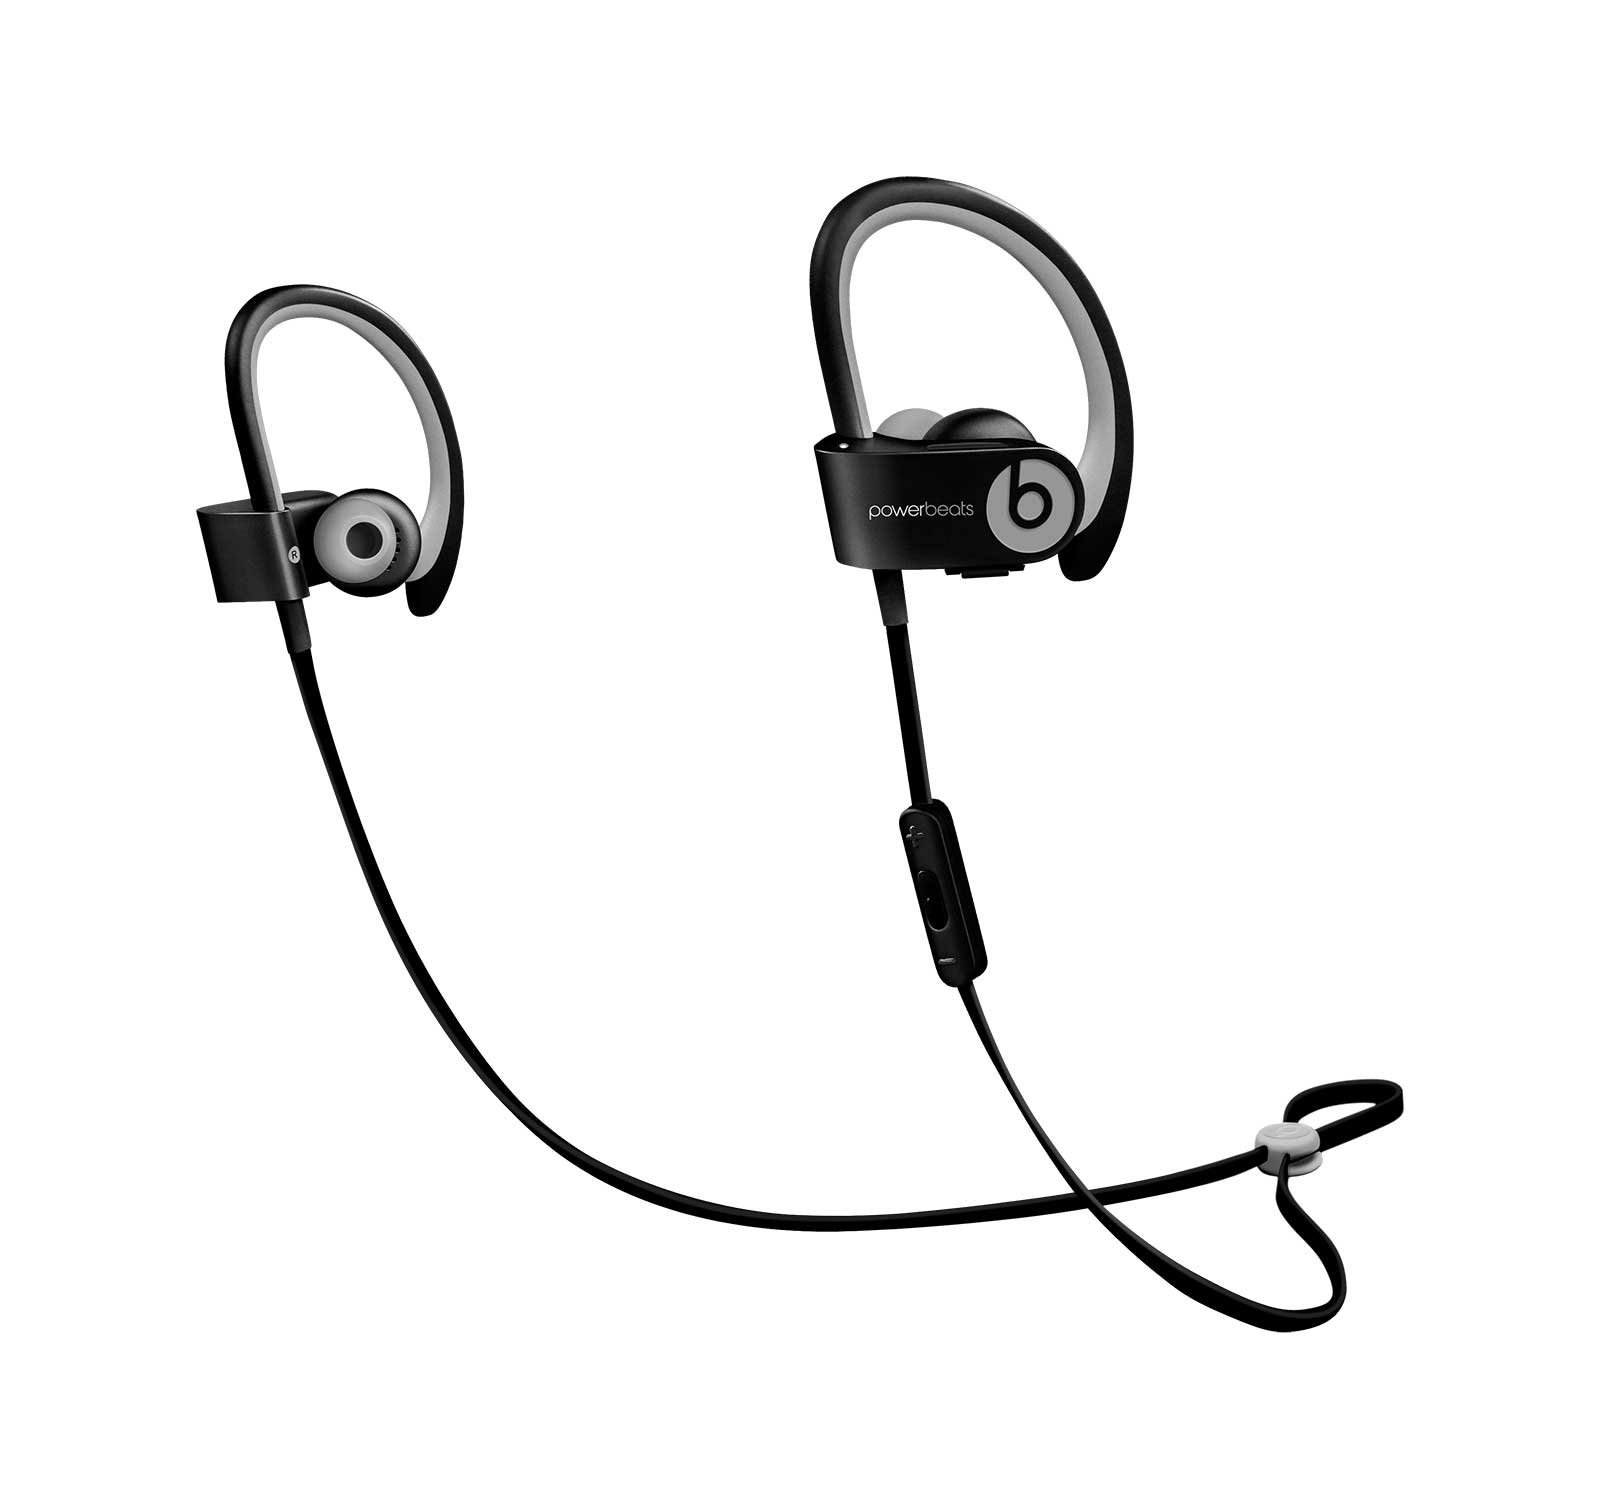 Beats by Dr dre Powerbeats2 Wireless In-Ear Bluetooth Headphone with Mic - Sports Black (Renewed) by Beats